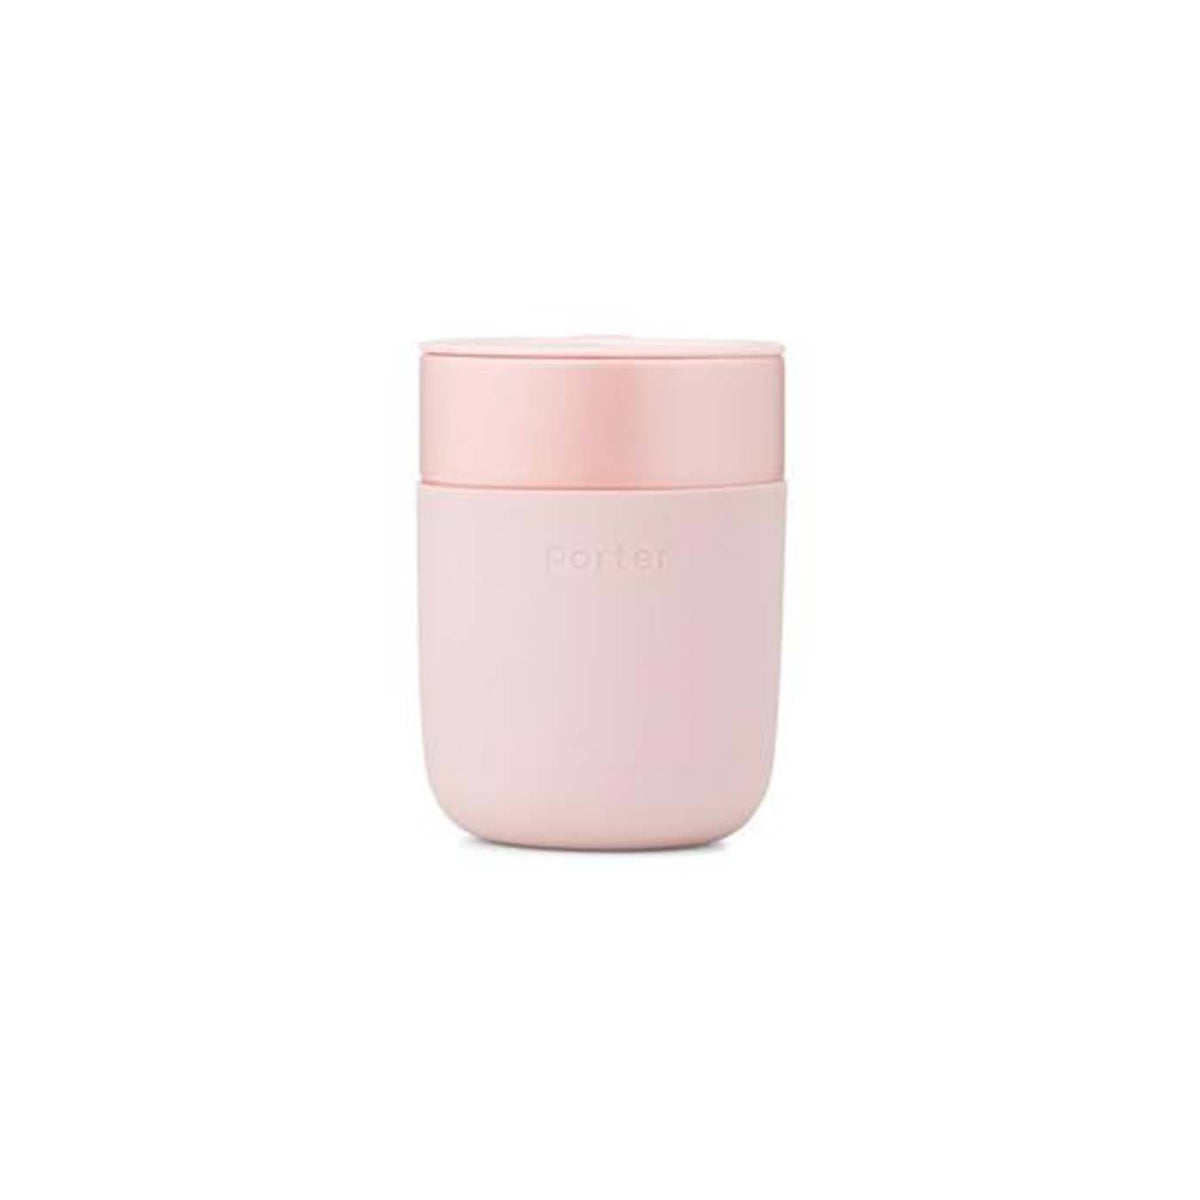 Ceramic Mug 12 oz in Pink<br>by Porter